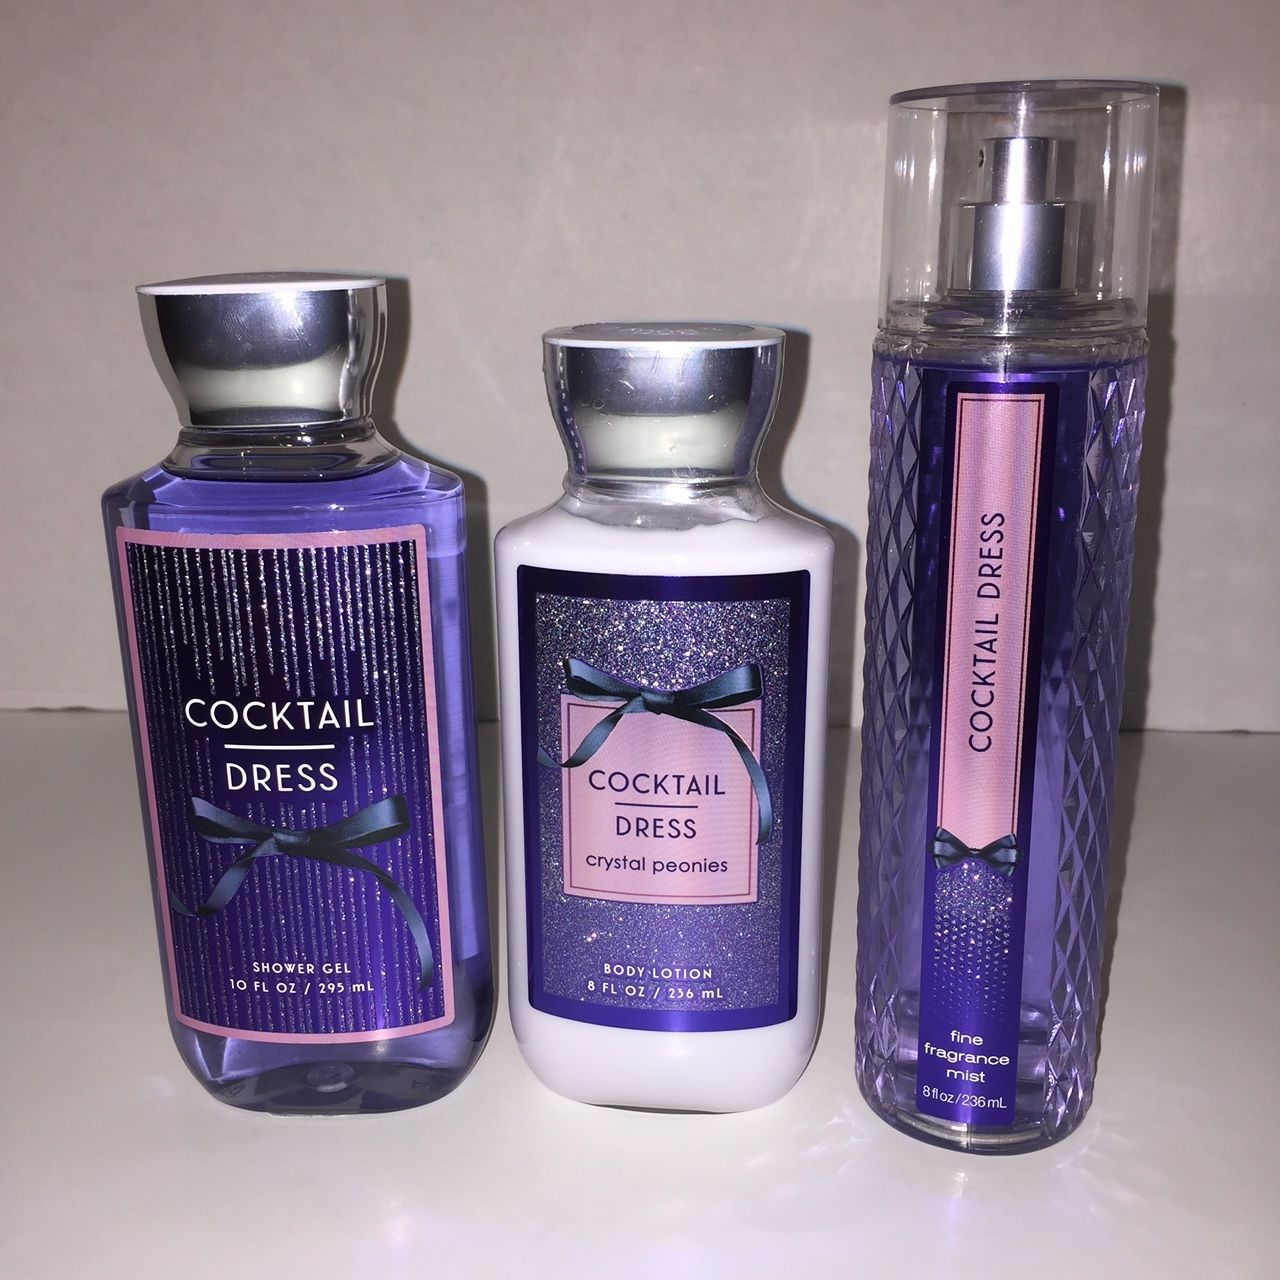 Mixed Items Bath And Body Works Cocktail Dress Crystal Peonies Gel Lotion And Mist Free Ship Buy It Now Only Bath And Body Works Bath And Body Body Lotion [ 1280 x 1280 Pixel ]